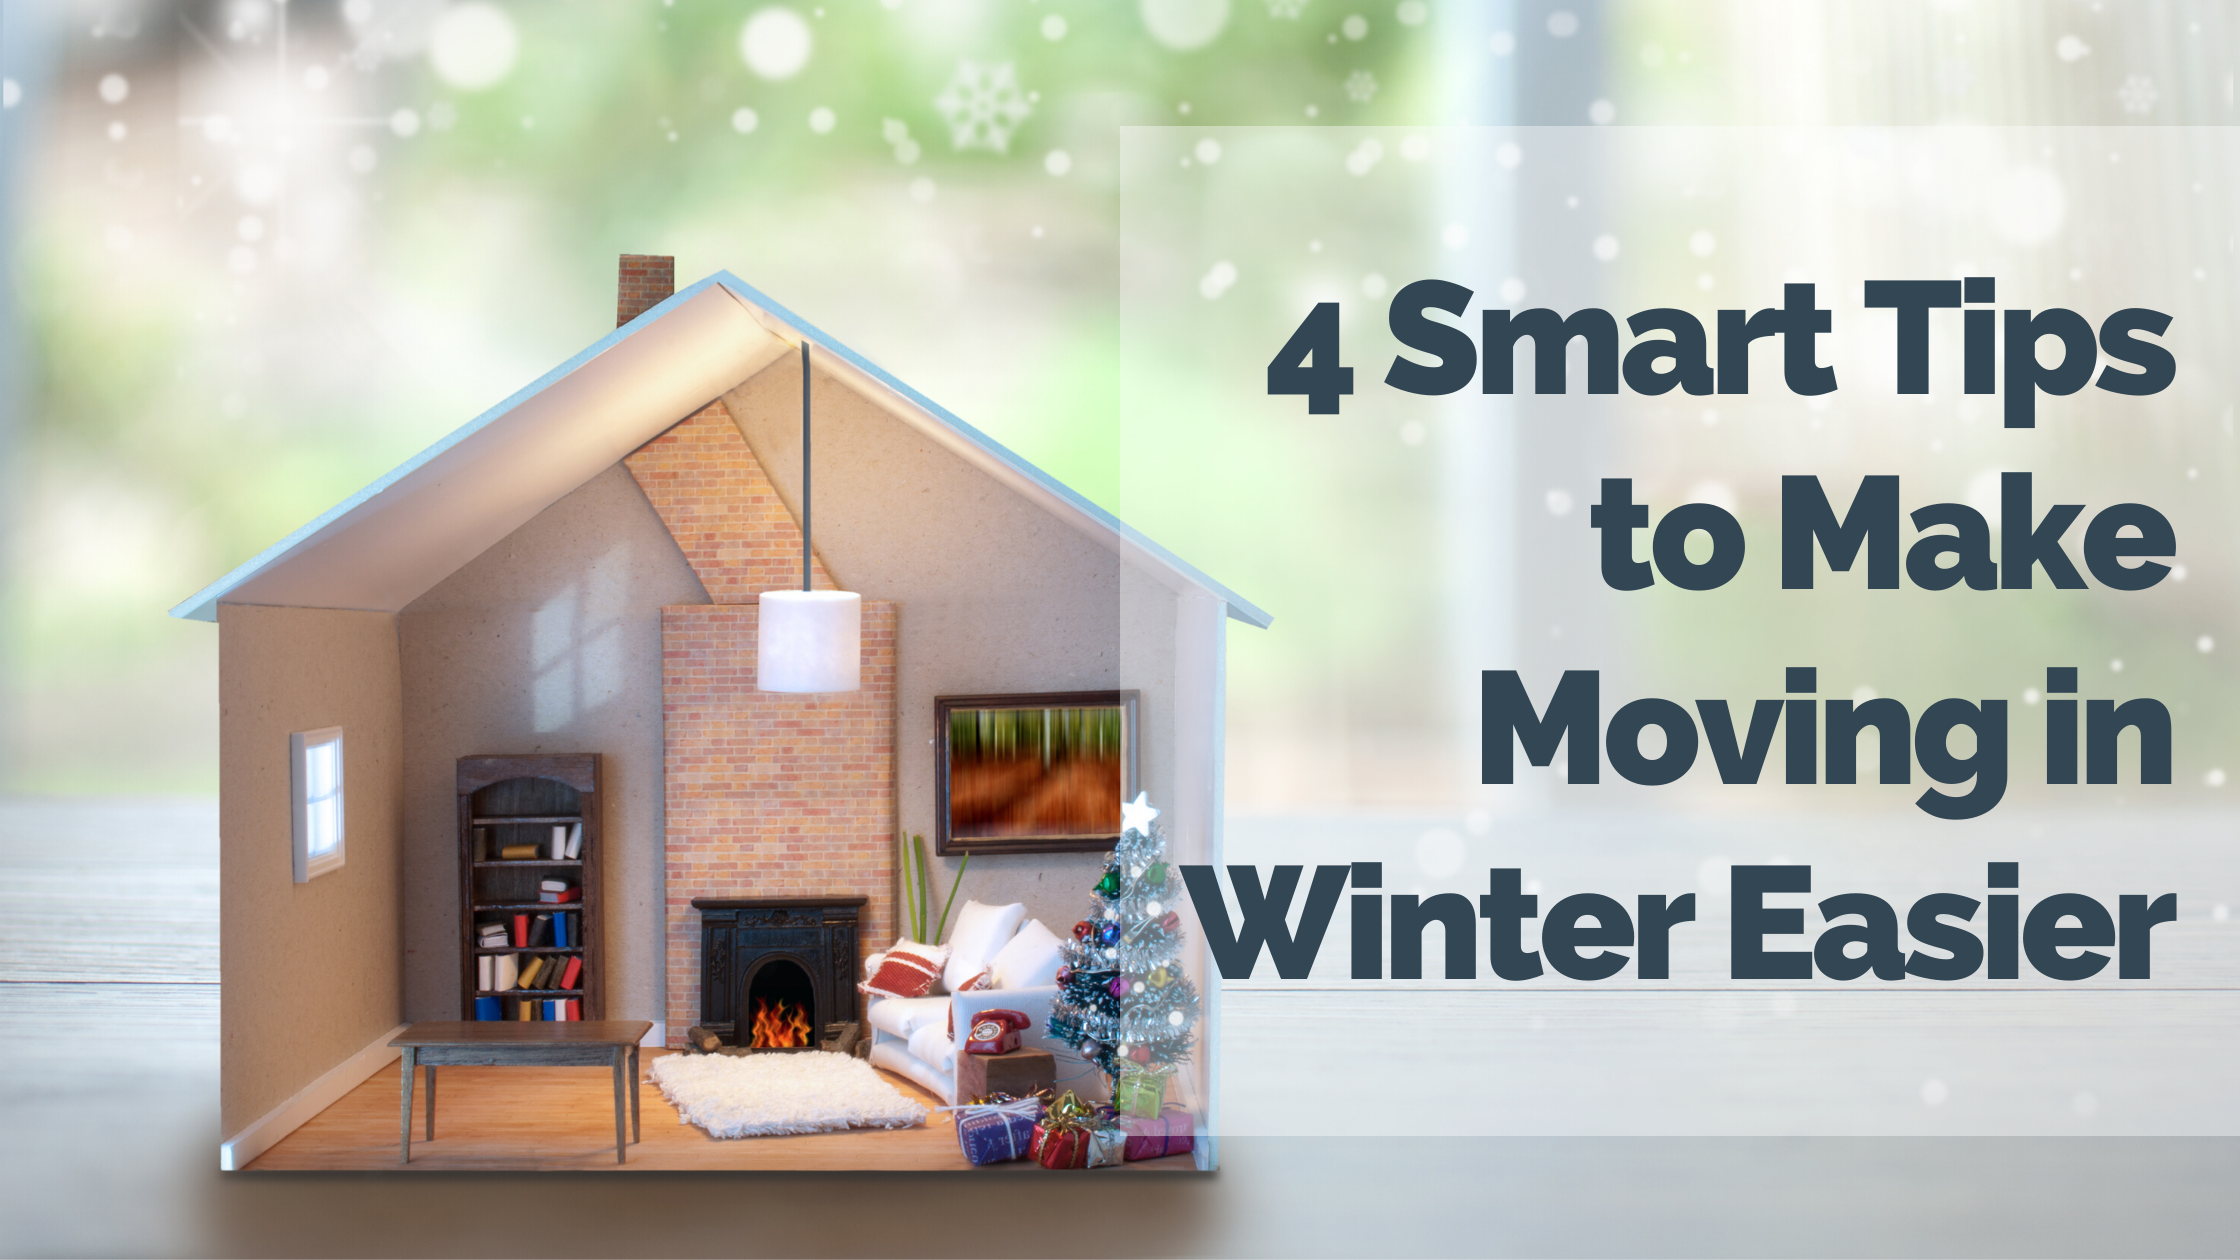 4 Smart Tips to Make Moving in Winter Easier